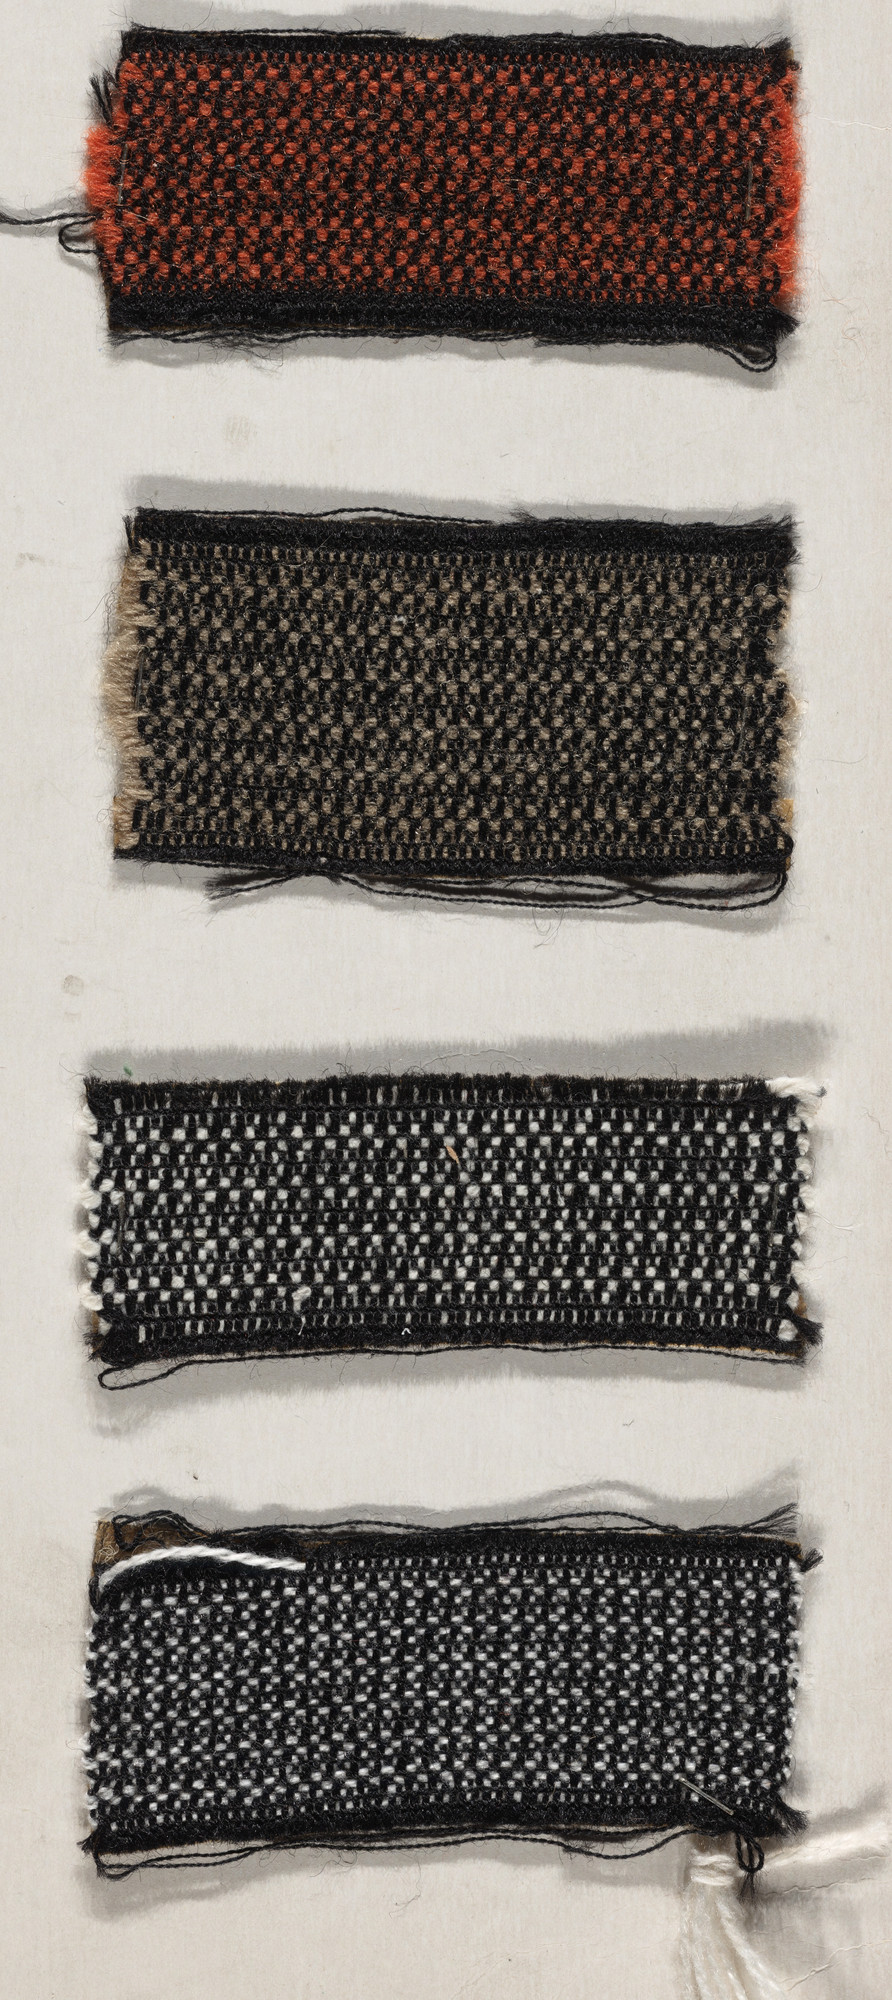 Anni Albers. Woven Fabric Samples. 1933